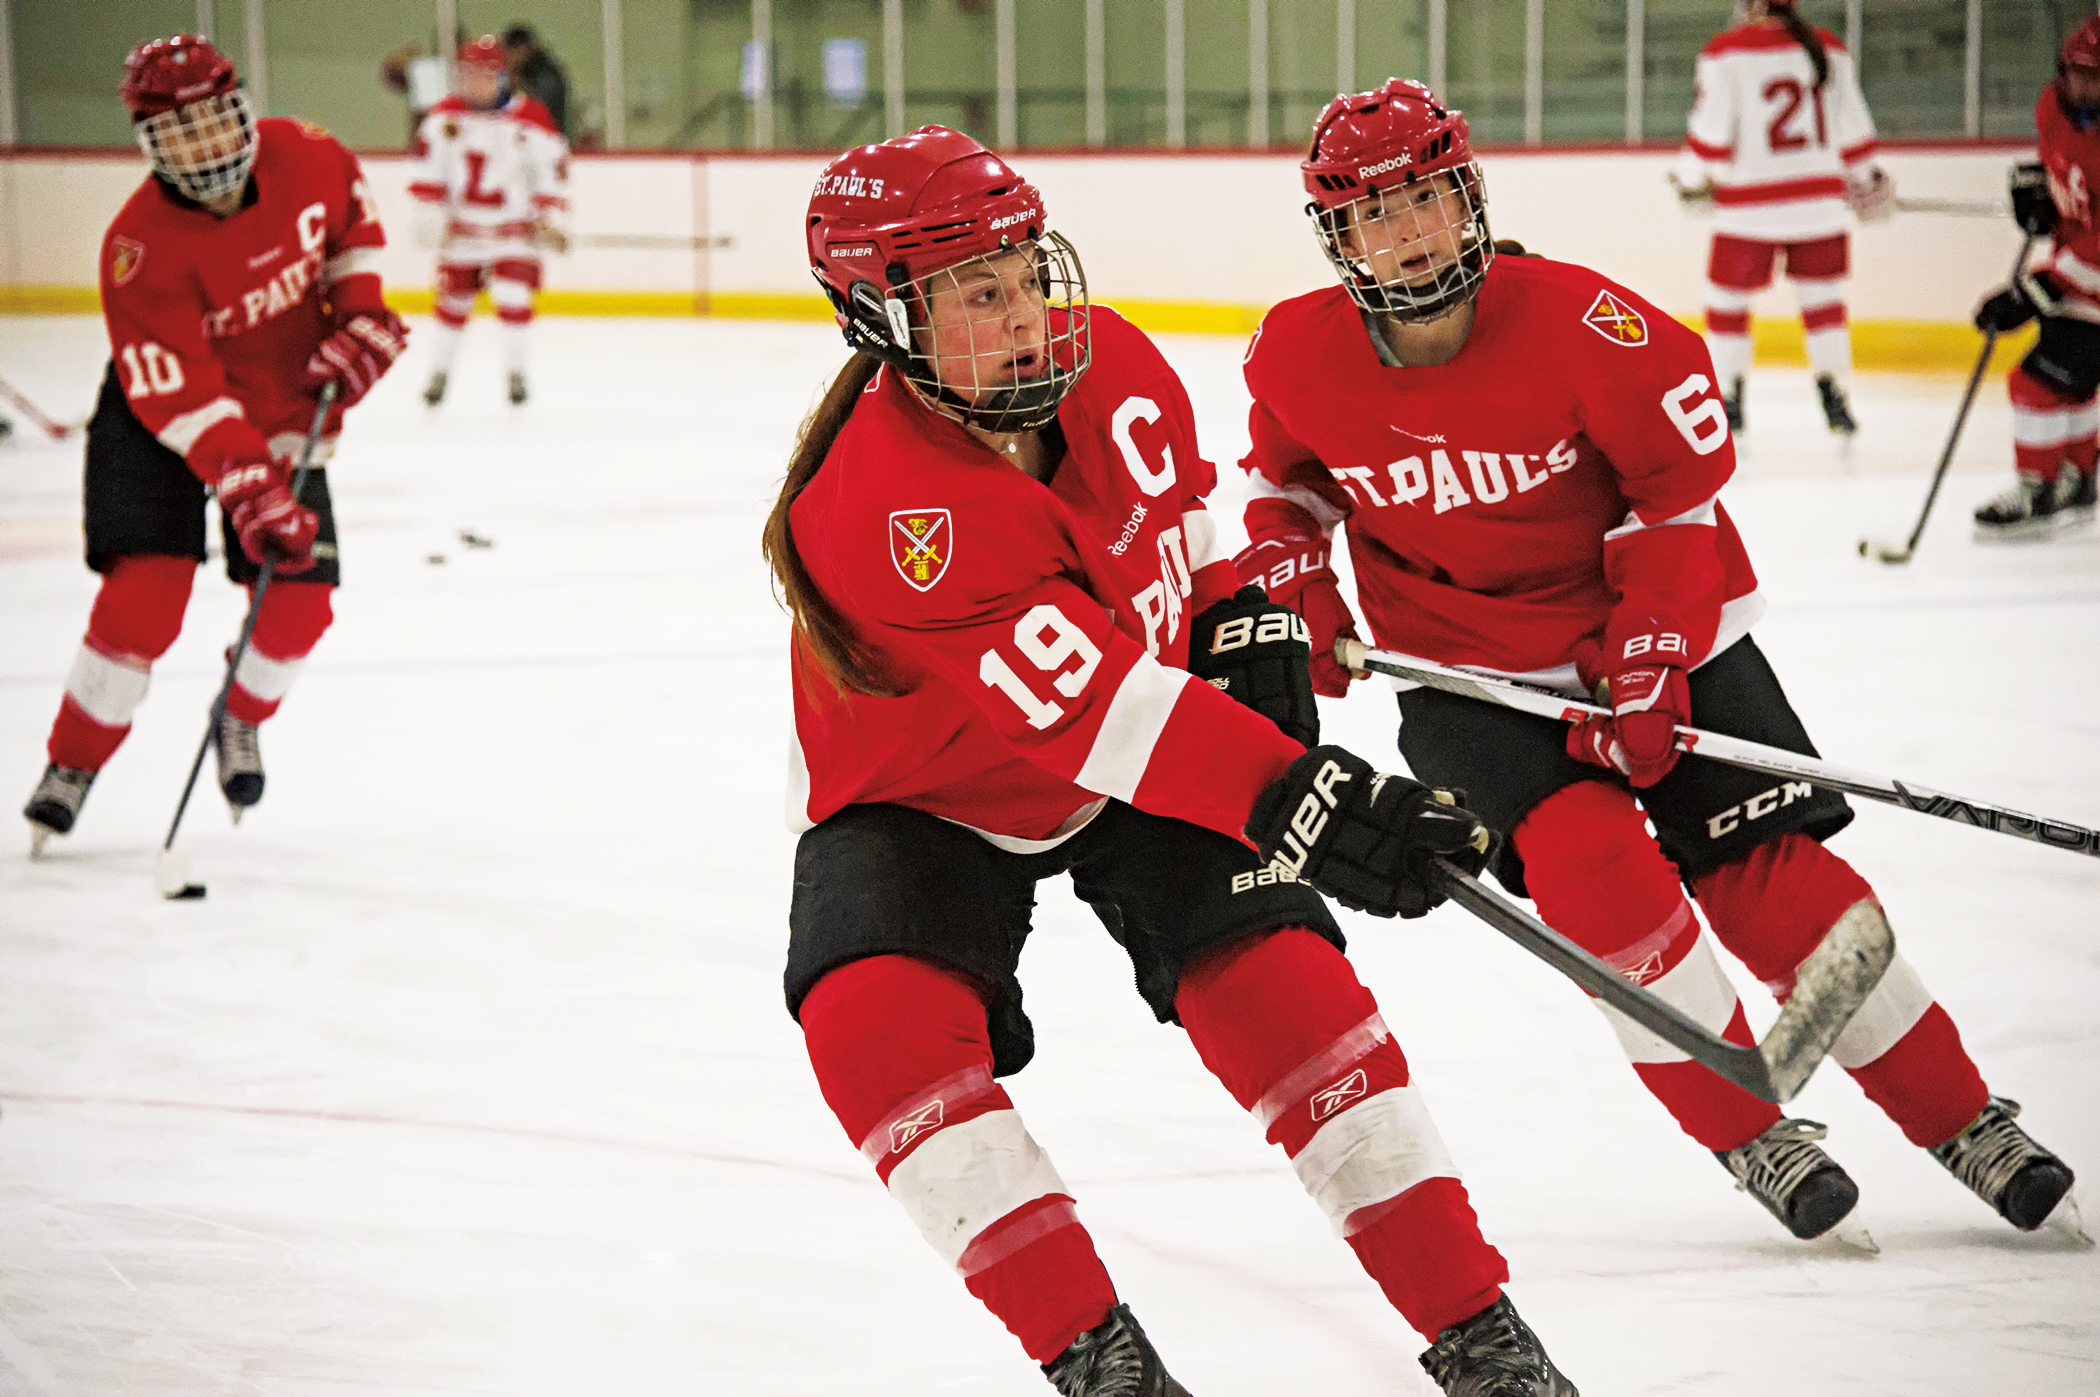 Caitlyn Wilkin '17 (l.) and Paige Galle '19 of the girls hockey team.